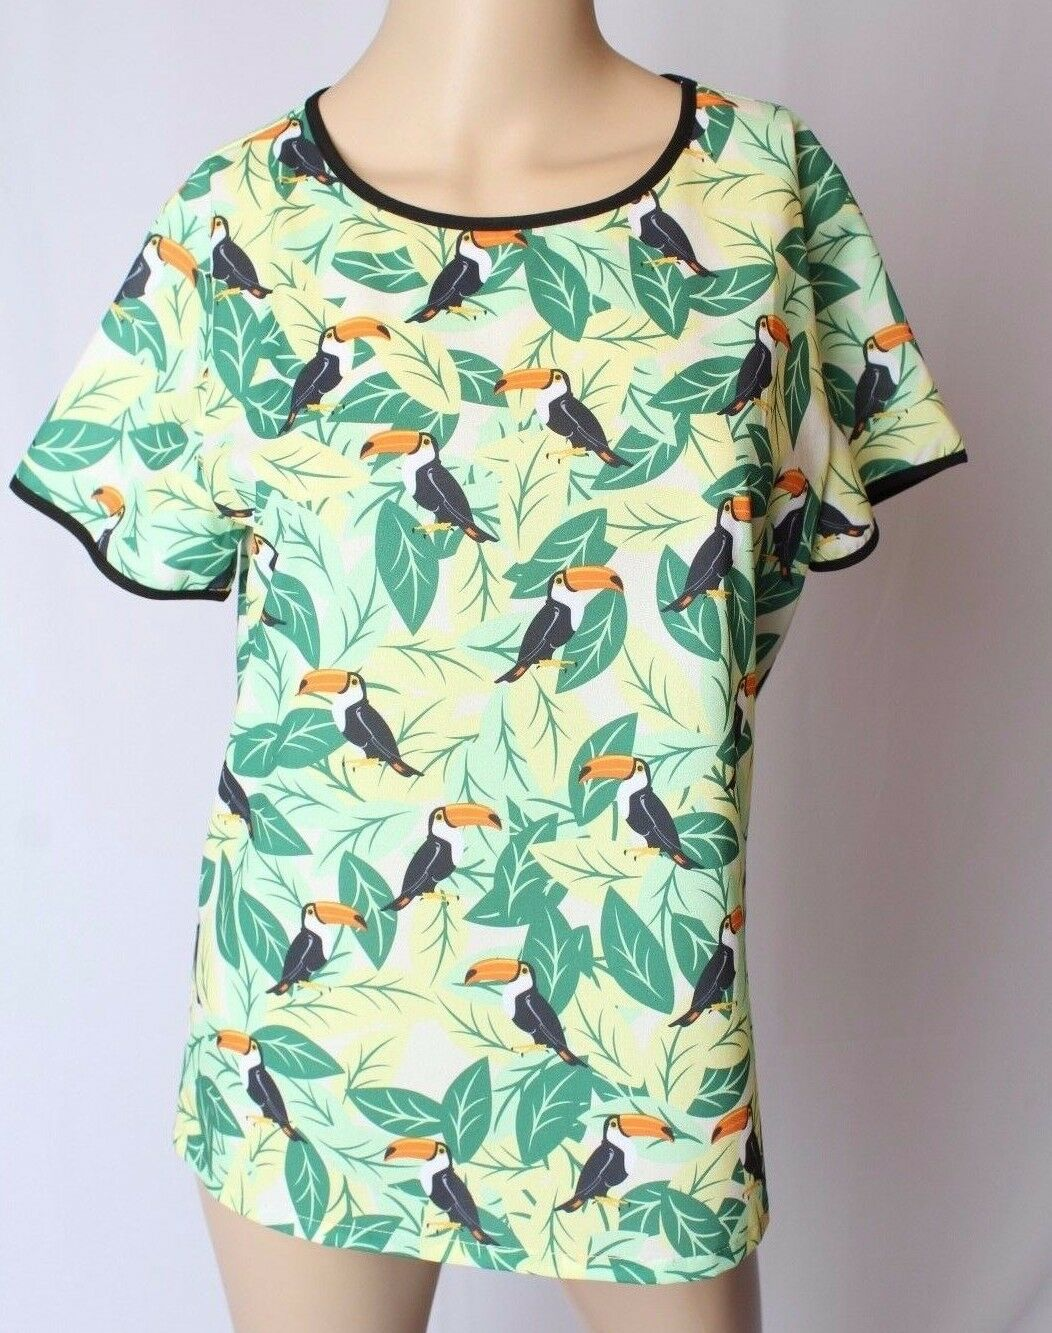 NWT Sugarhill Boutique Modcloth Toucan Bird Tropical Print Sheer Blouse Top